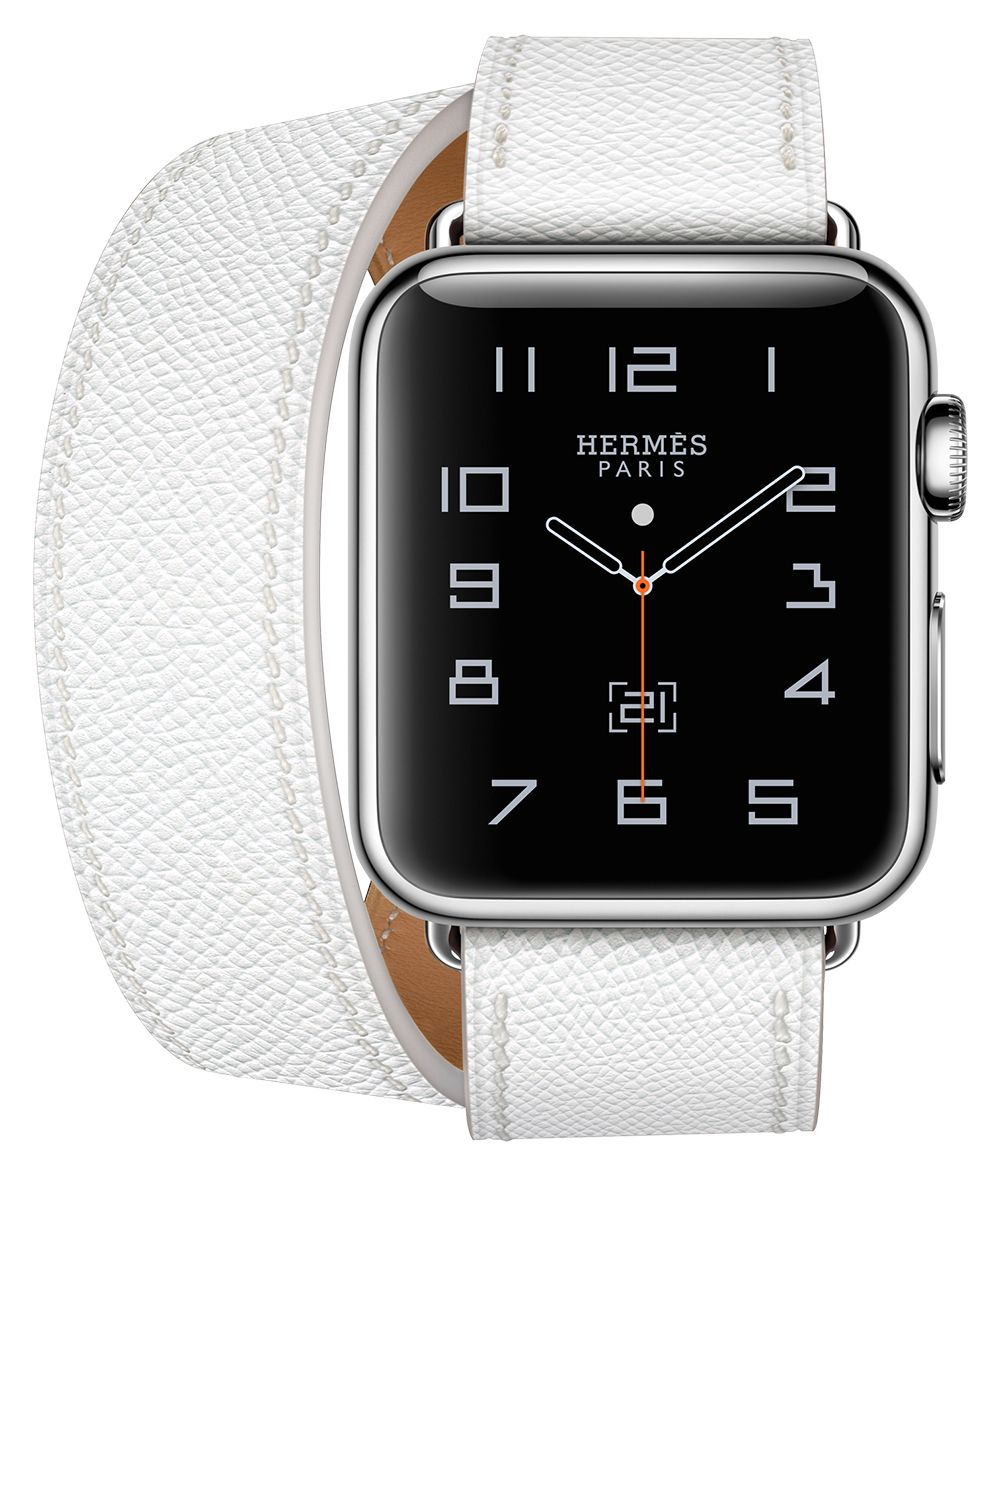 Always on Time The Best Women's Watches Watch bands